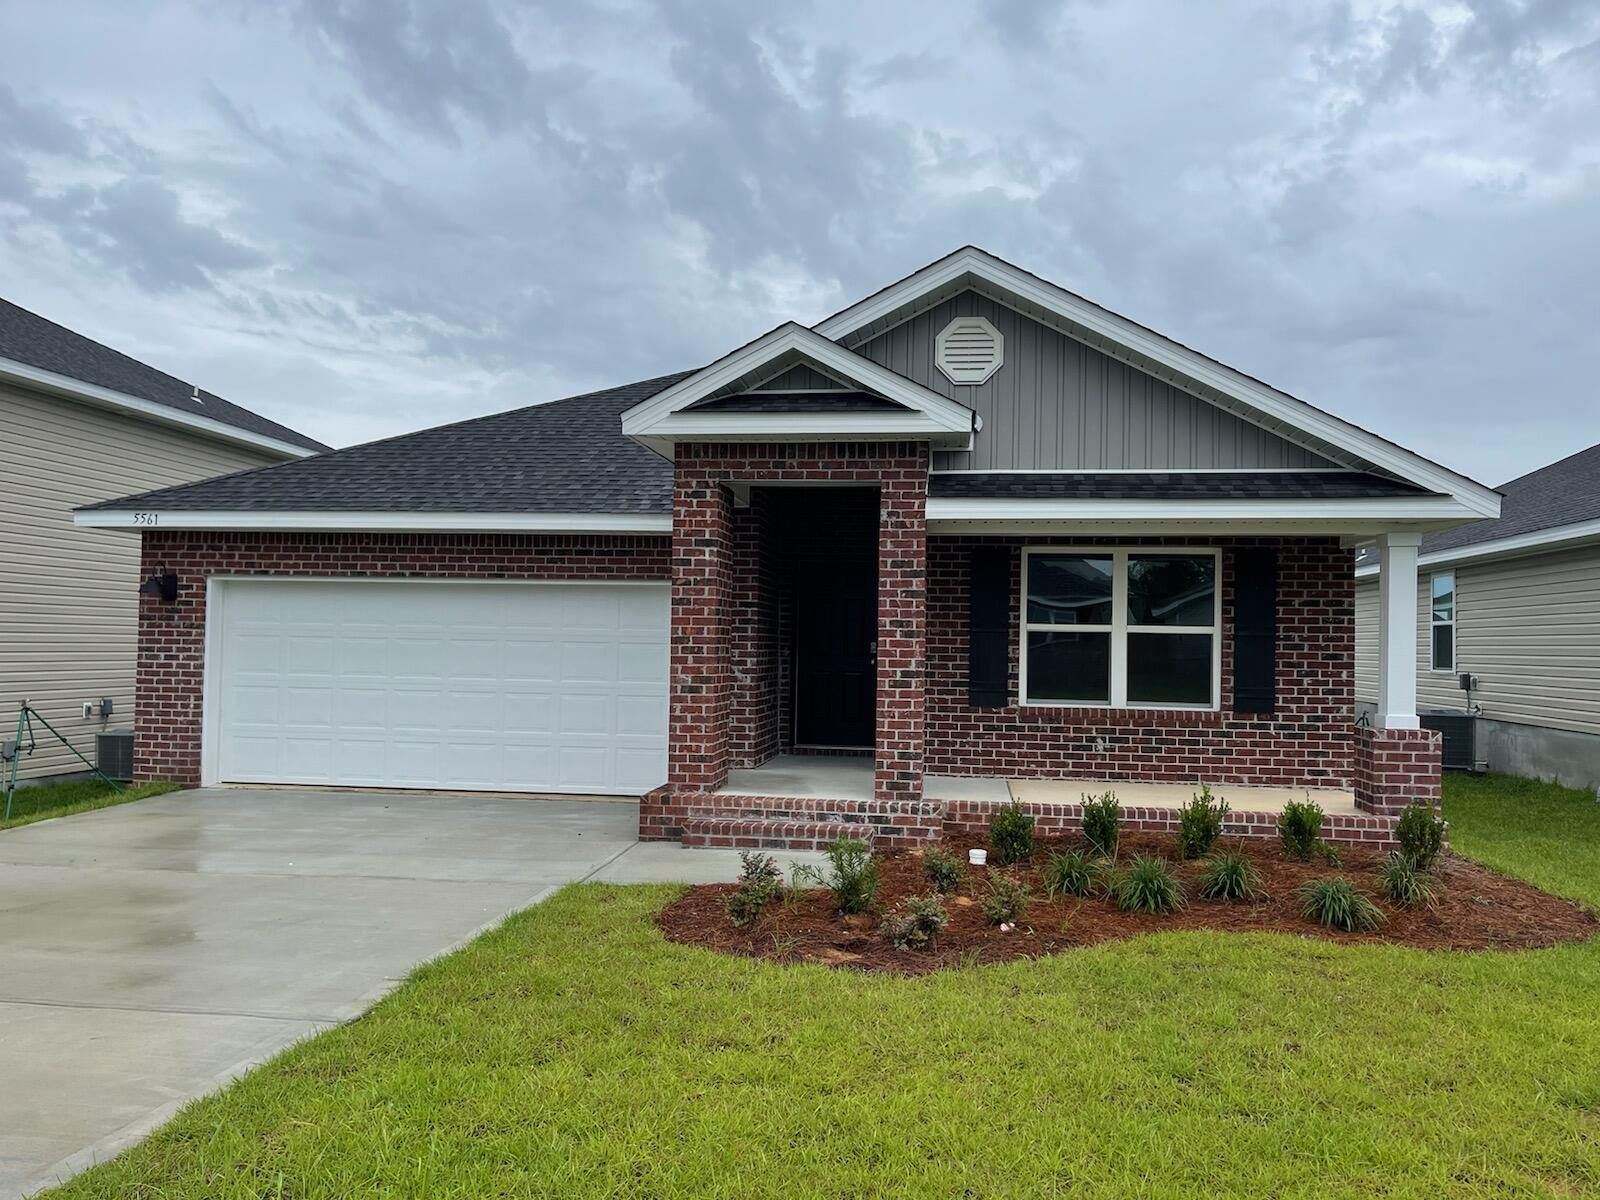 UNDER CONSTRUCTION NOW!  The Cali is one of our most popular  designes featuring 4 bedrooms, 2 baths